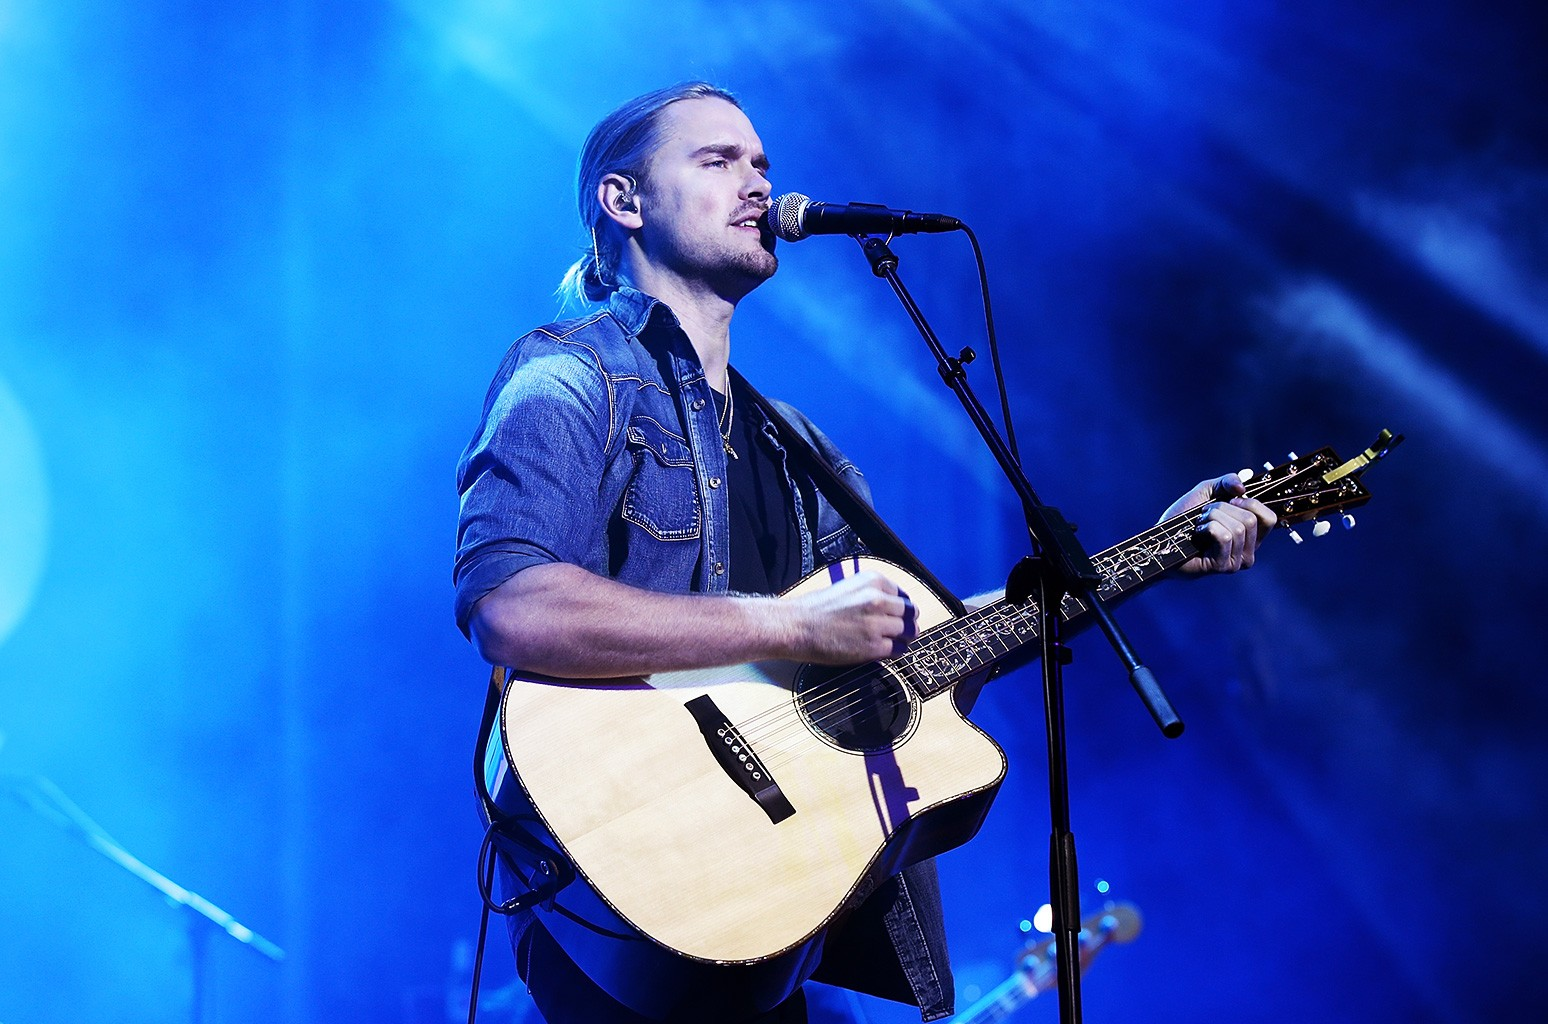 """Chord Overstreet performs during Ford Hosts """"Go Small, Live Big"""" Interactive Festival at Hollywood & Highland Courtyard on Nov. 16, 2016 in Hollywood, Calif."""